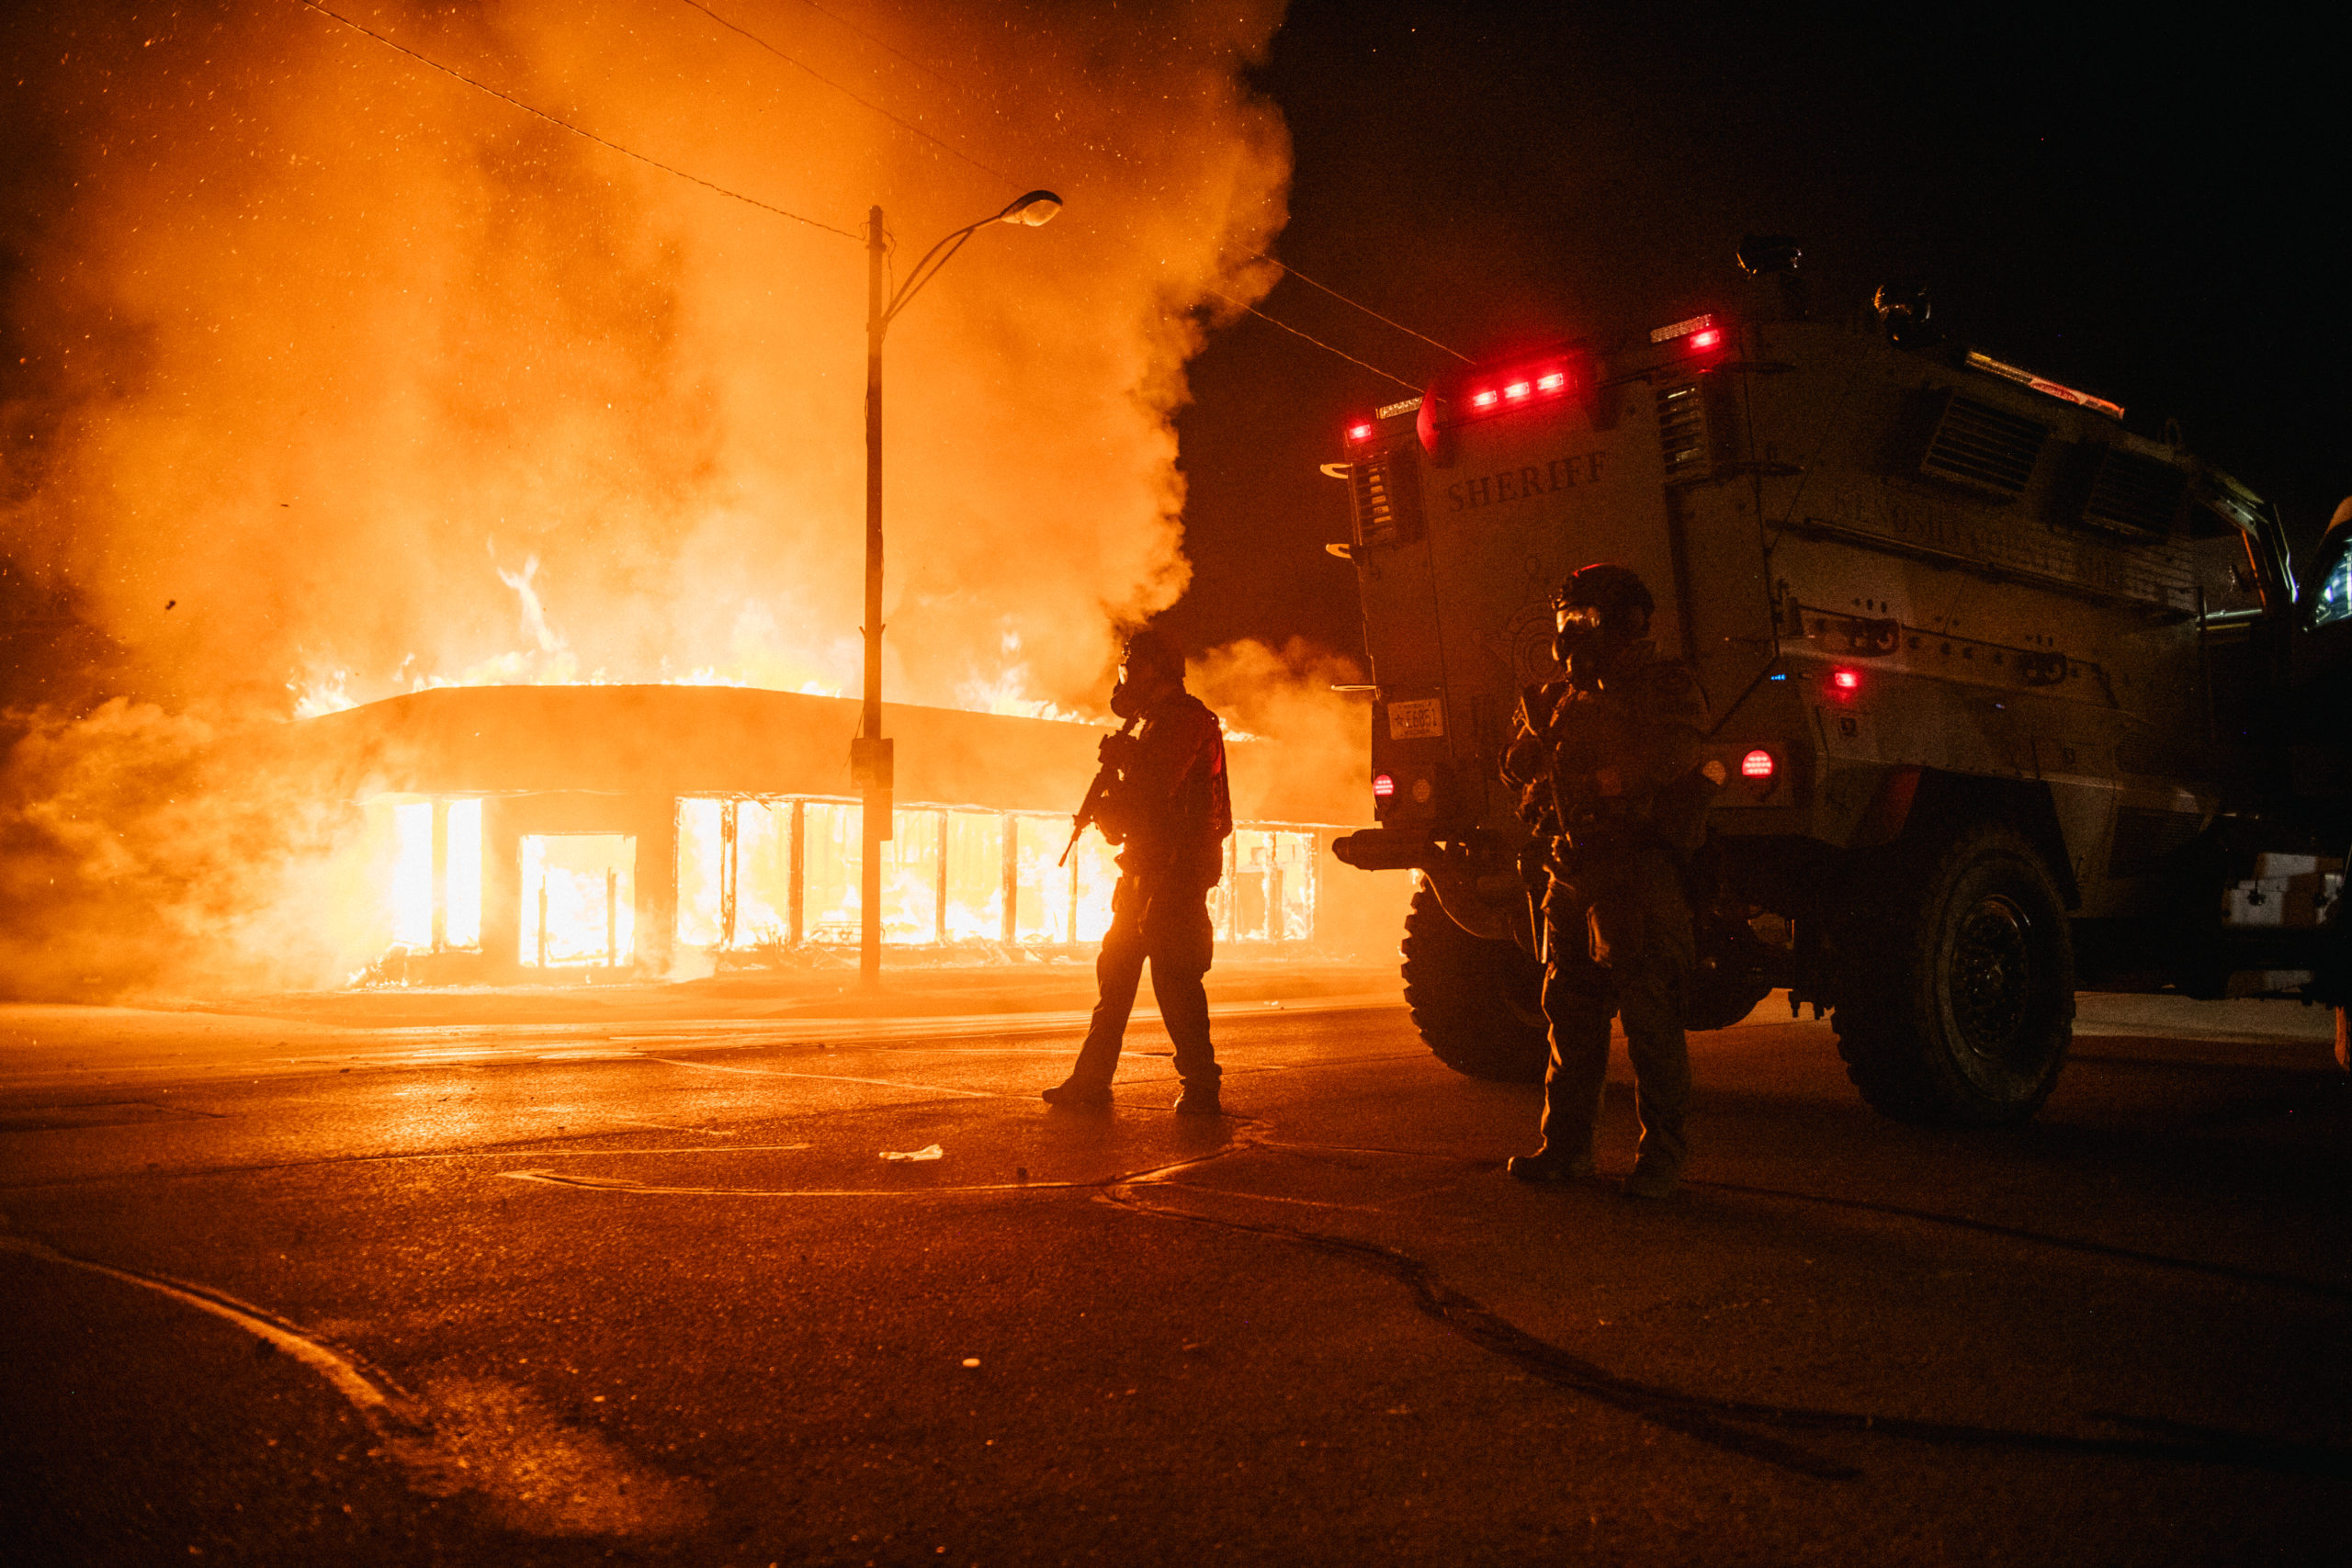 KENOSHA, WI - AUGUST 24: A police armored vehicle patrols an intersection on August 24, 2020 in Kenosha, Wisconsin. This is the second night of rioting after the shooting of Jacob Blake, 29, on August 23. Blake was shot multiple times in the back by Wisconsin police officers after attempting to enter into the drivers side of a vehicle. (Brandon Bell/Getty Images)